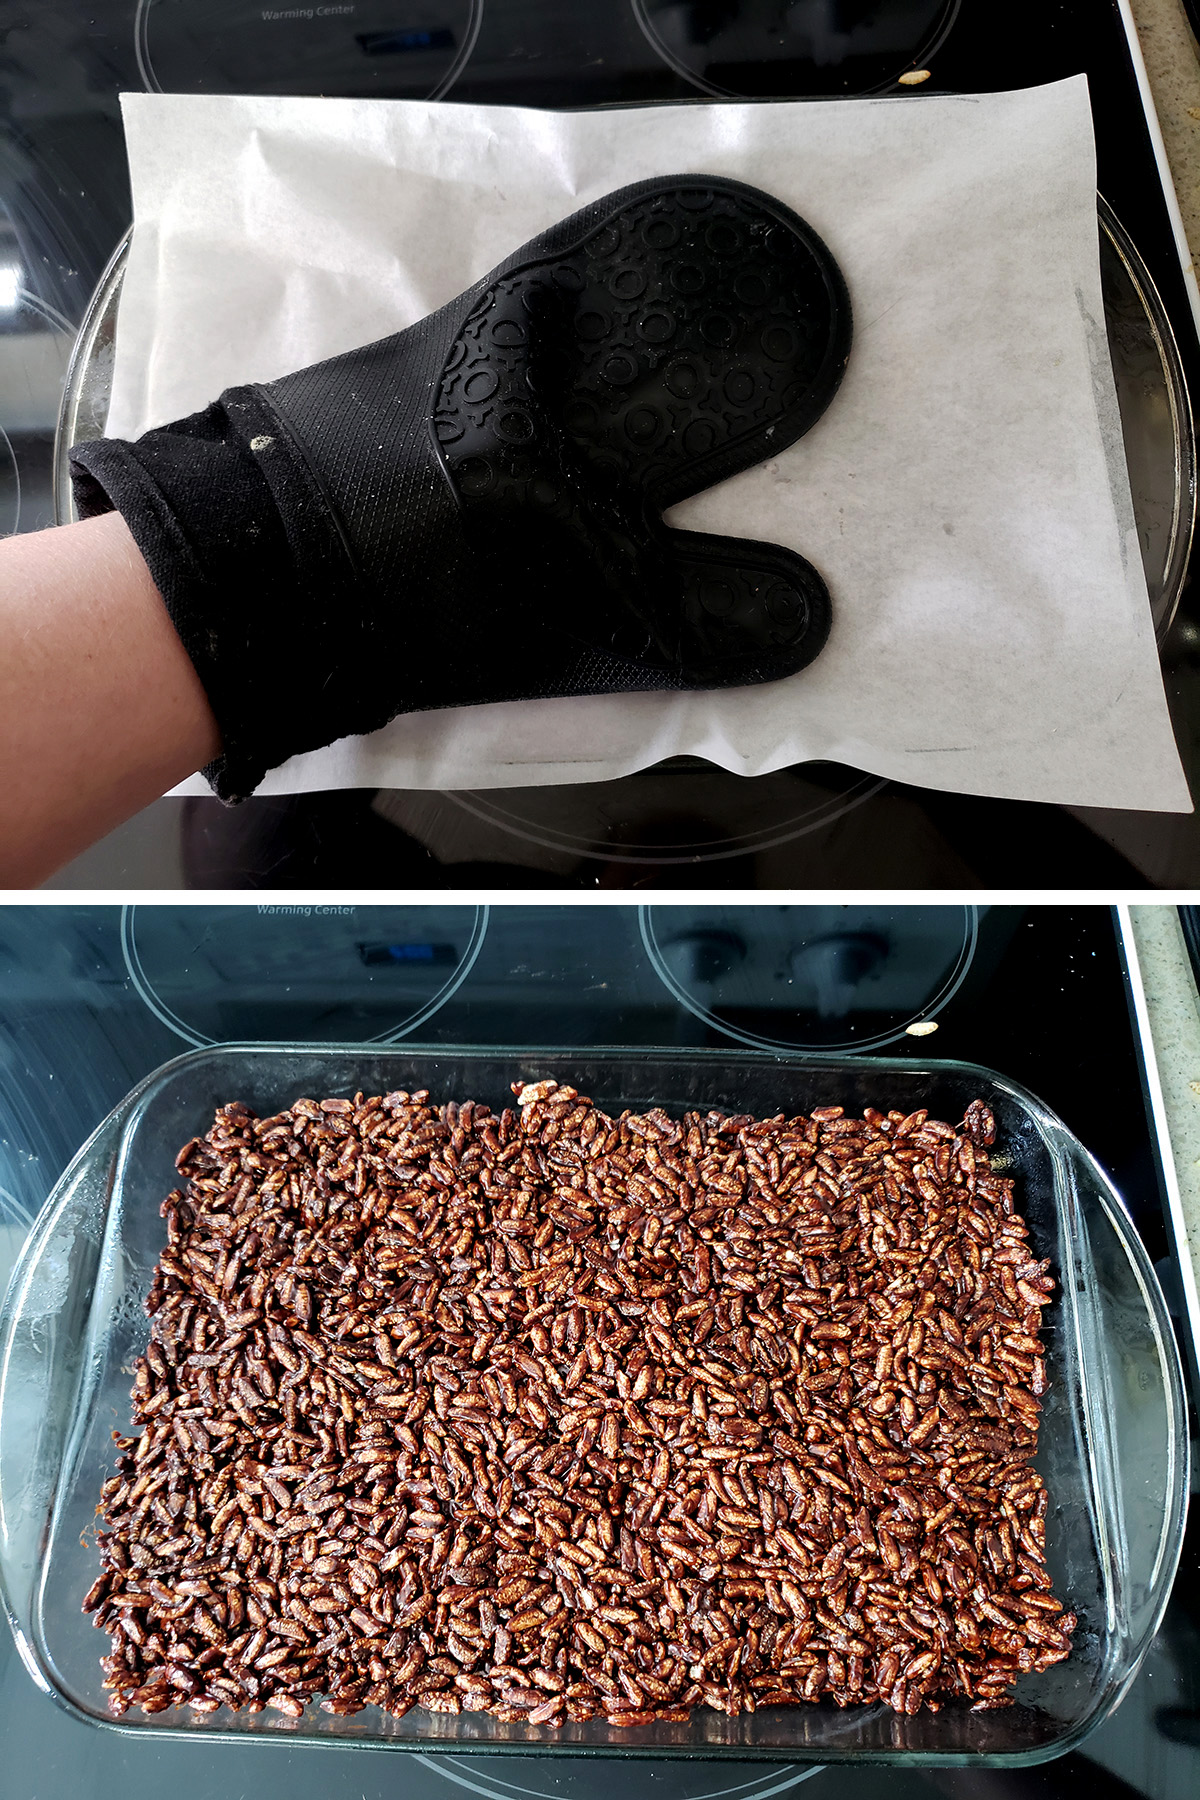 A two part image showing an oven glove and a sheet of parchment being used to flatten the bars, and the bars in the pan, nicely smoothed out.